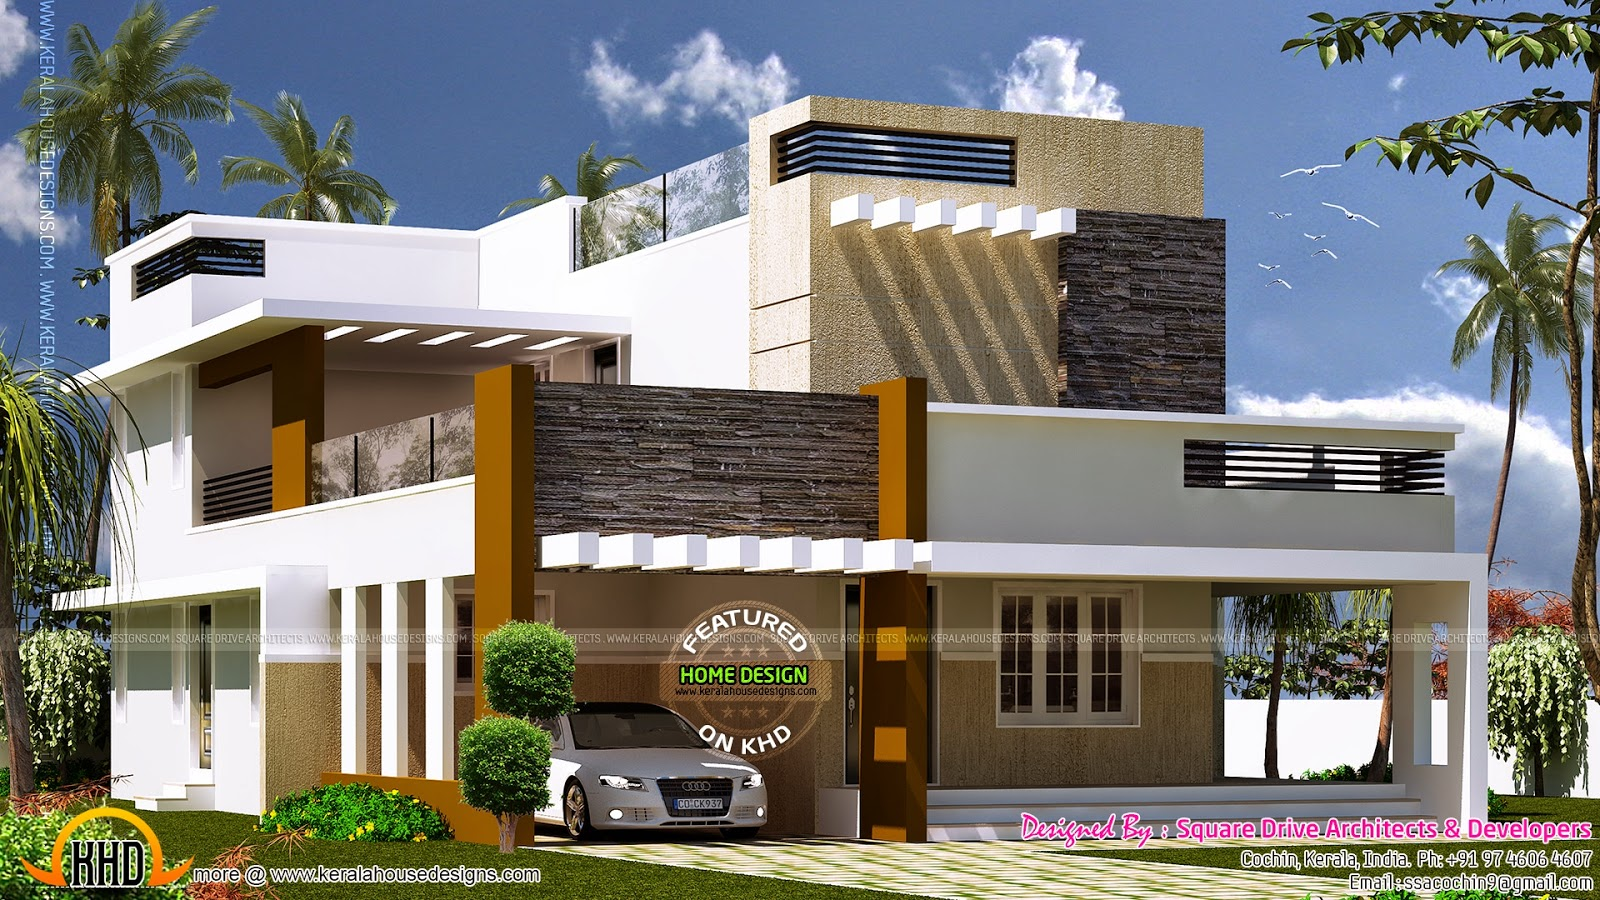 Exterior design of contemporary villa kerala home design for Home design exterior india